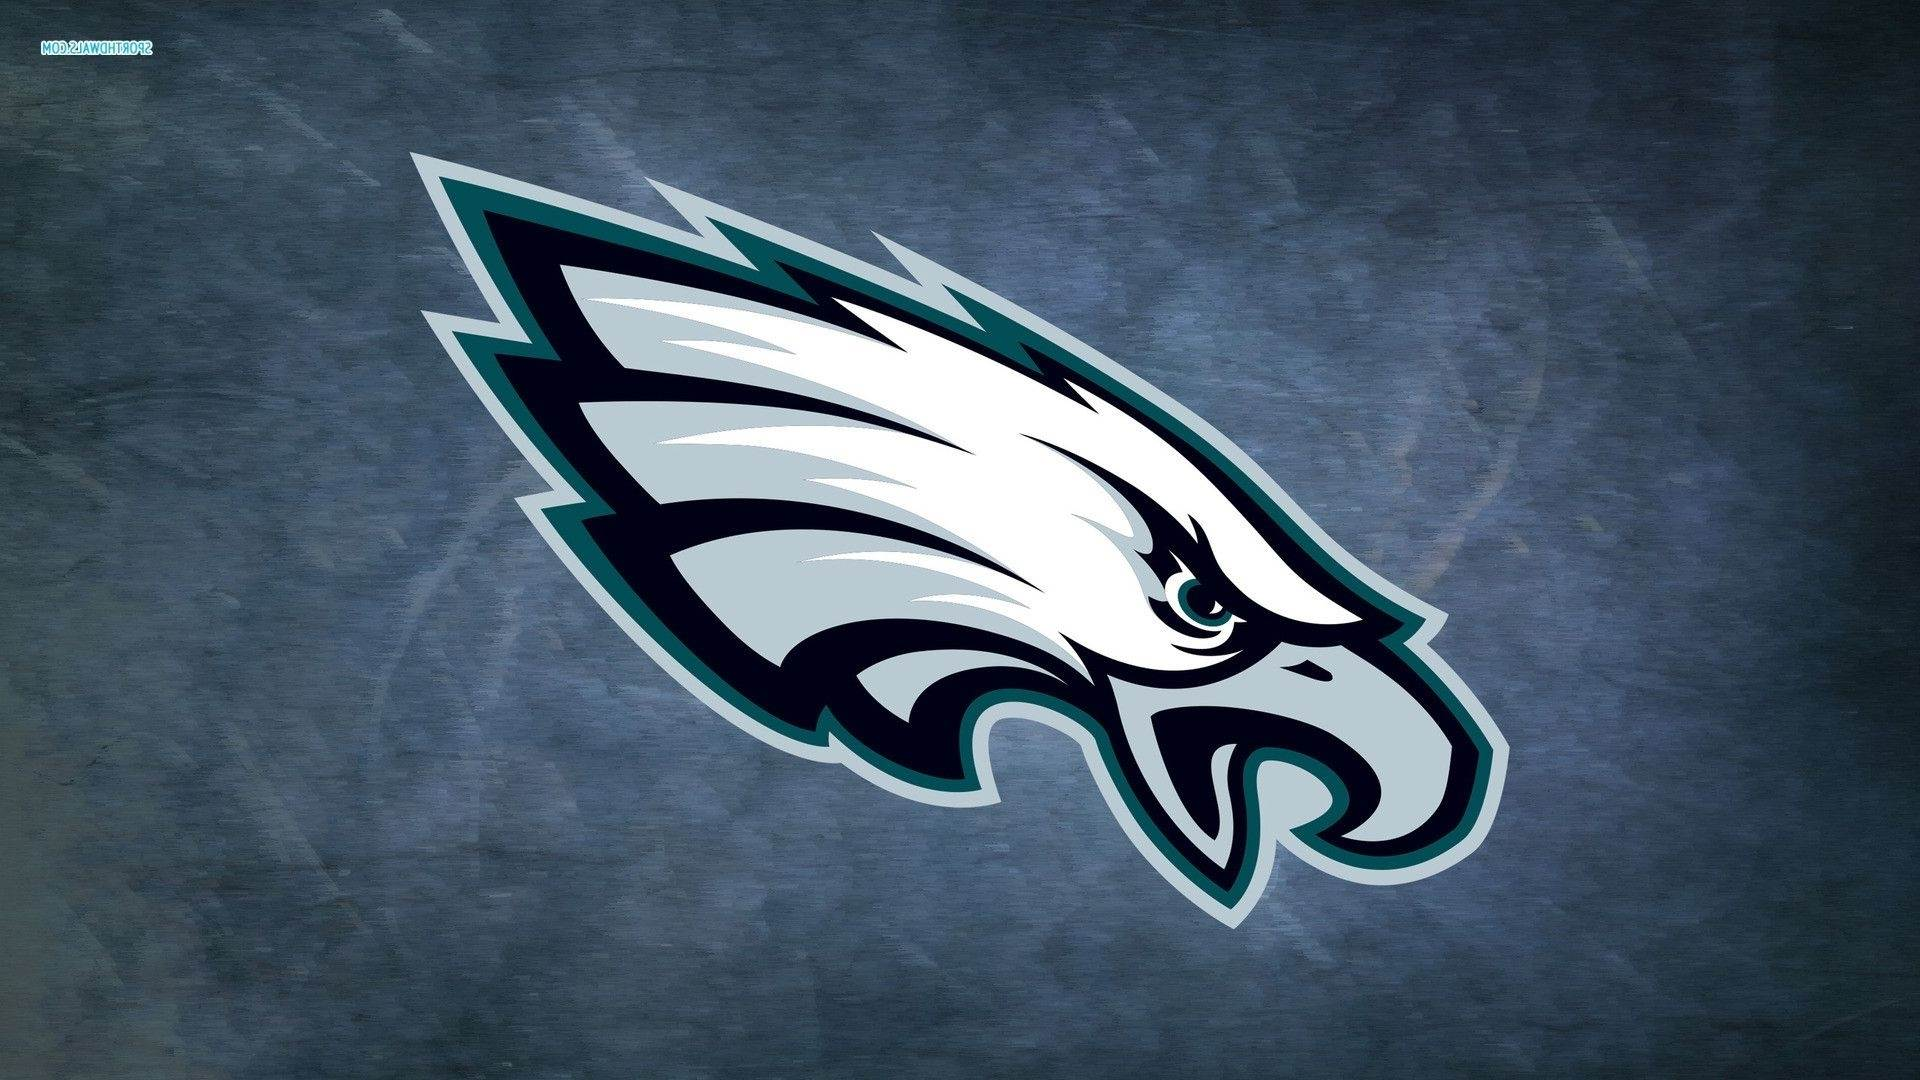 Philadelphia Eagles NFL Schedule Wallpaper Free Desktop 1920x1080